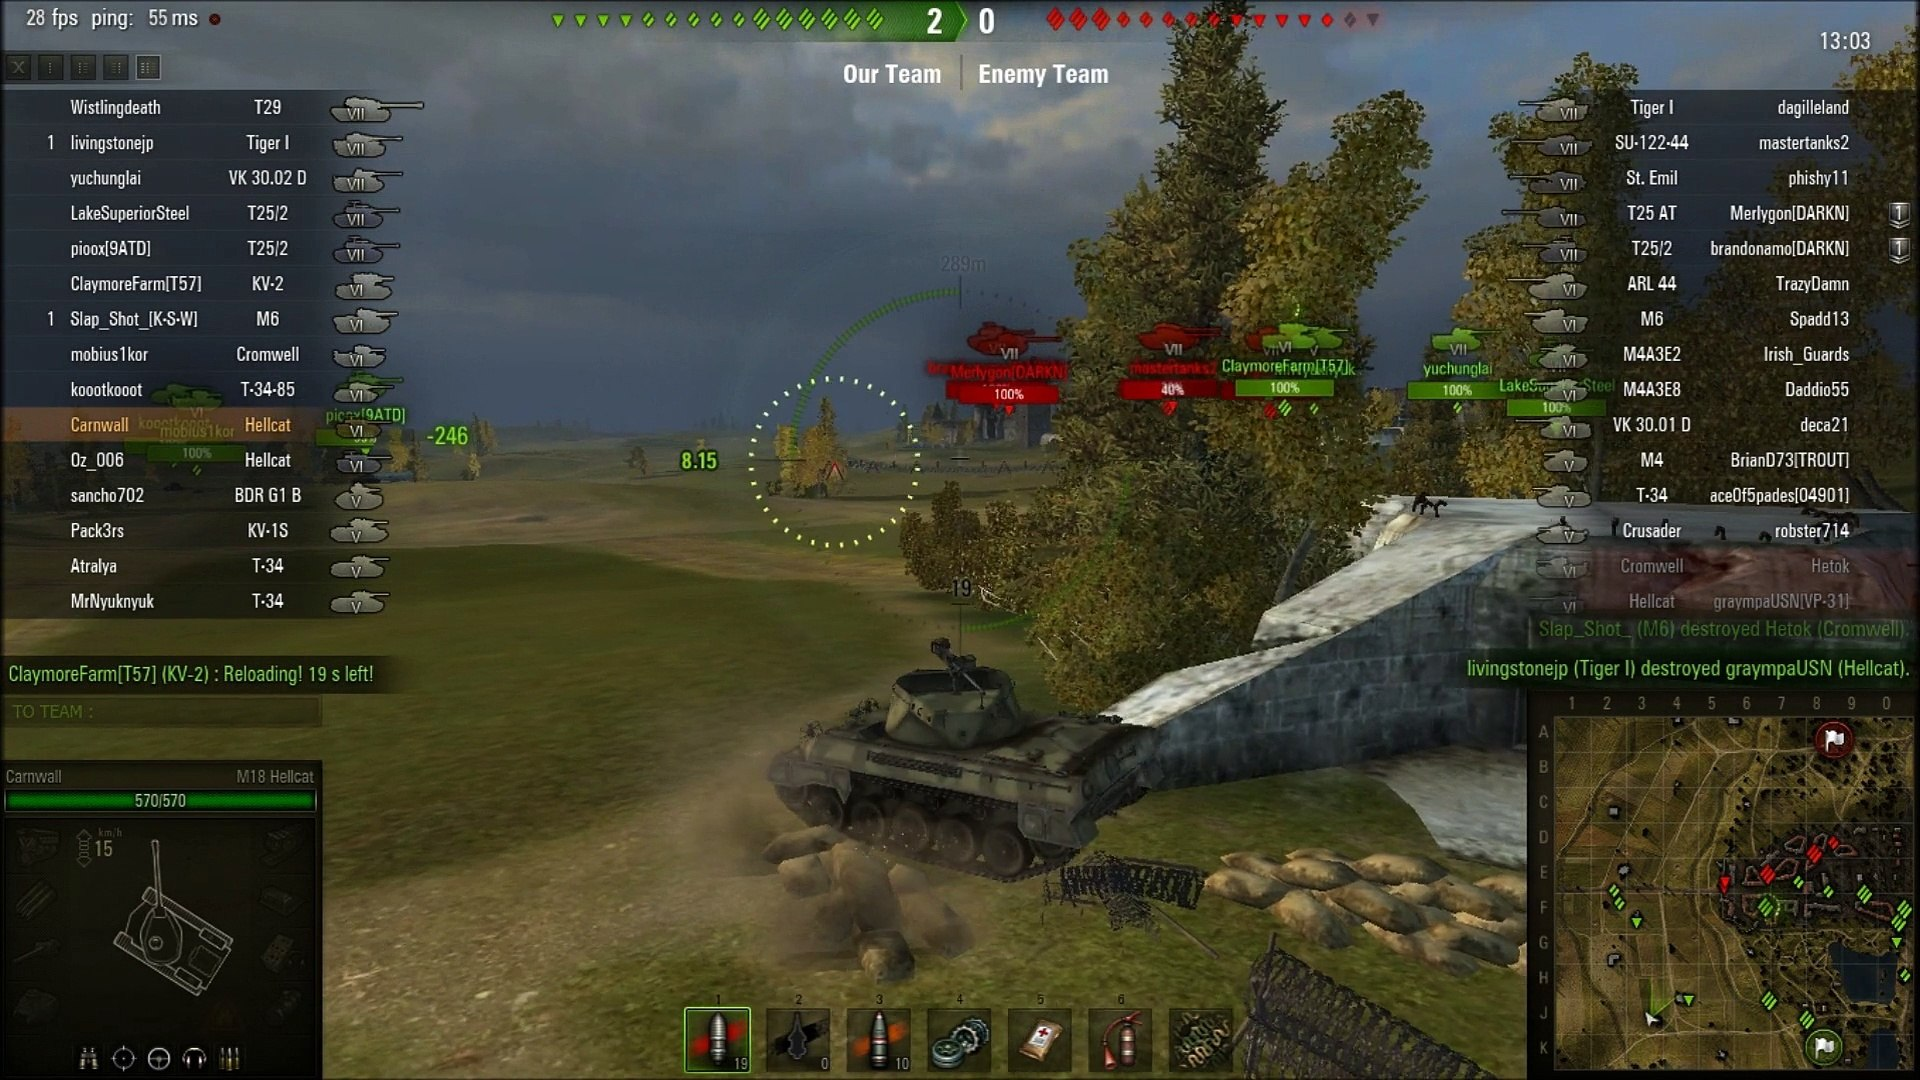 World Of Tanks: Random Battle - Siegfried Line